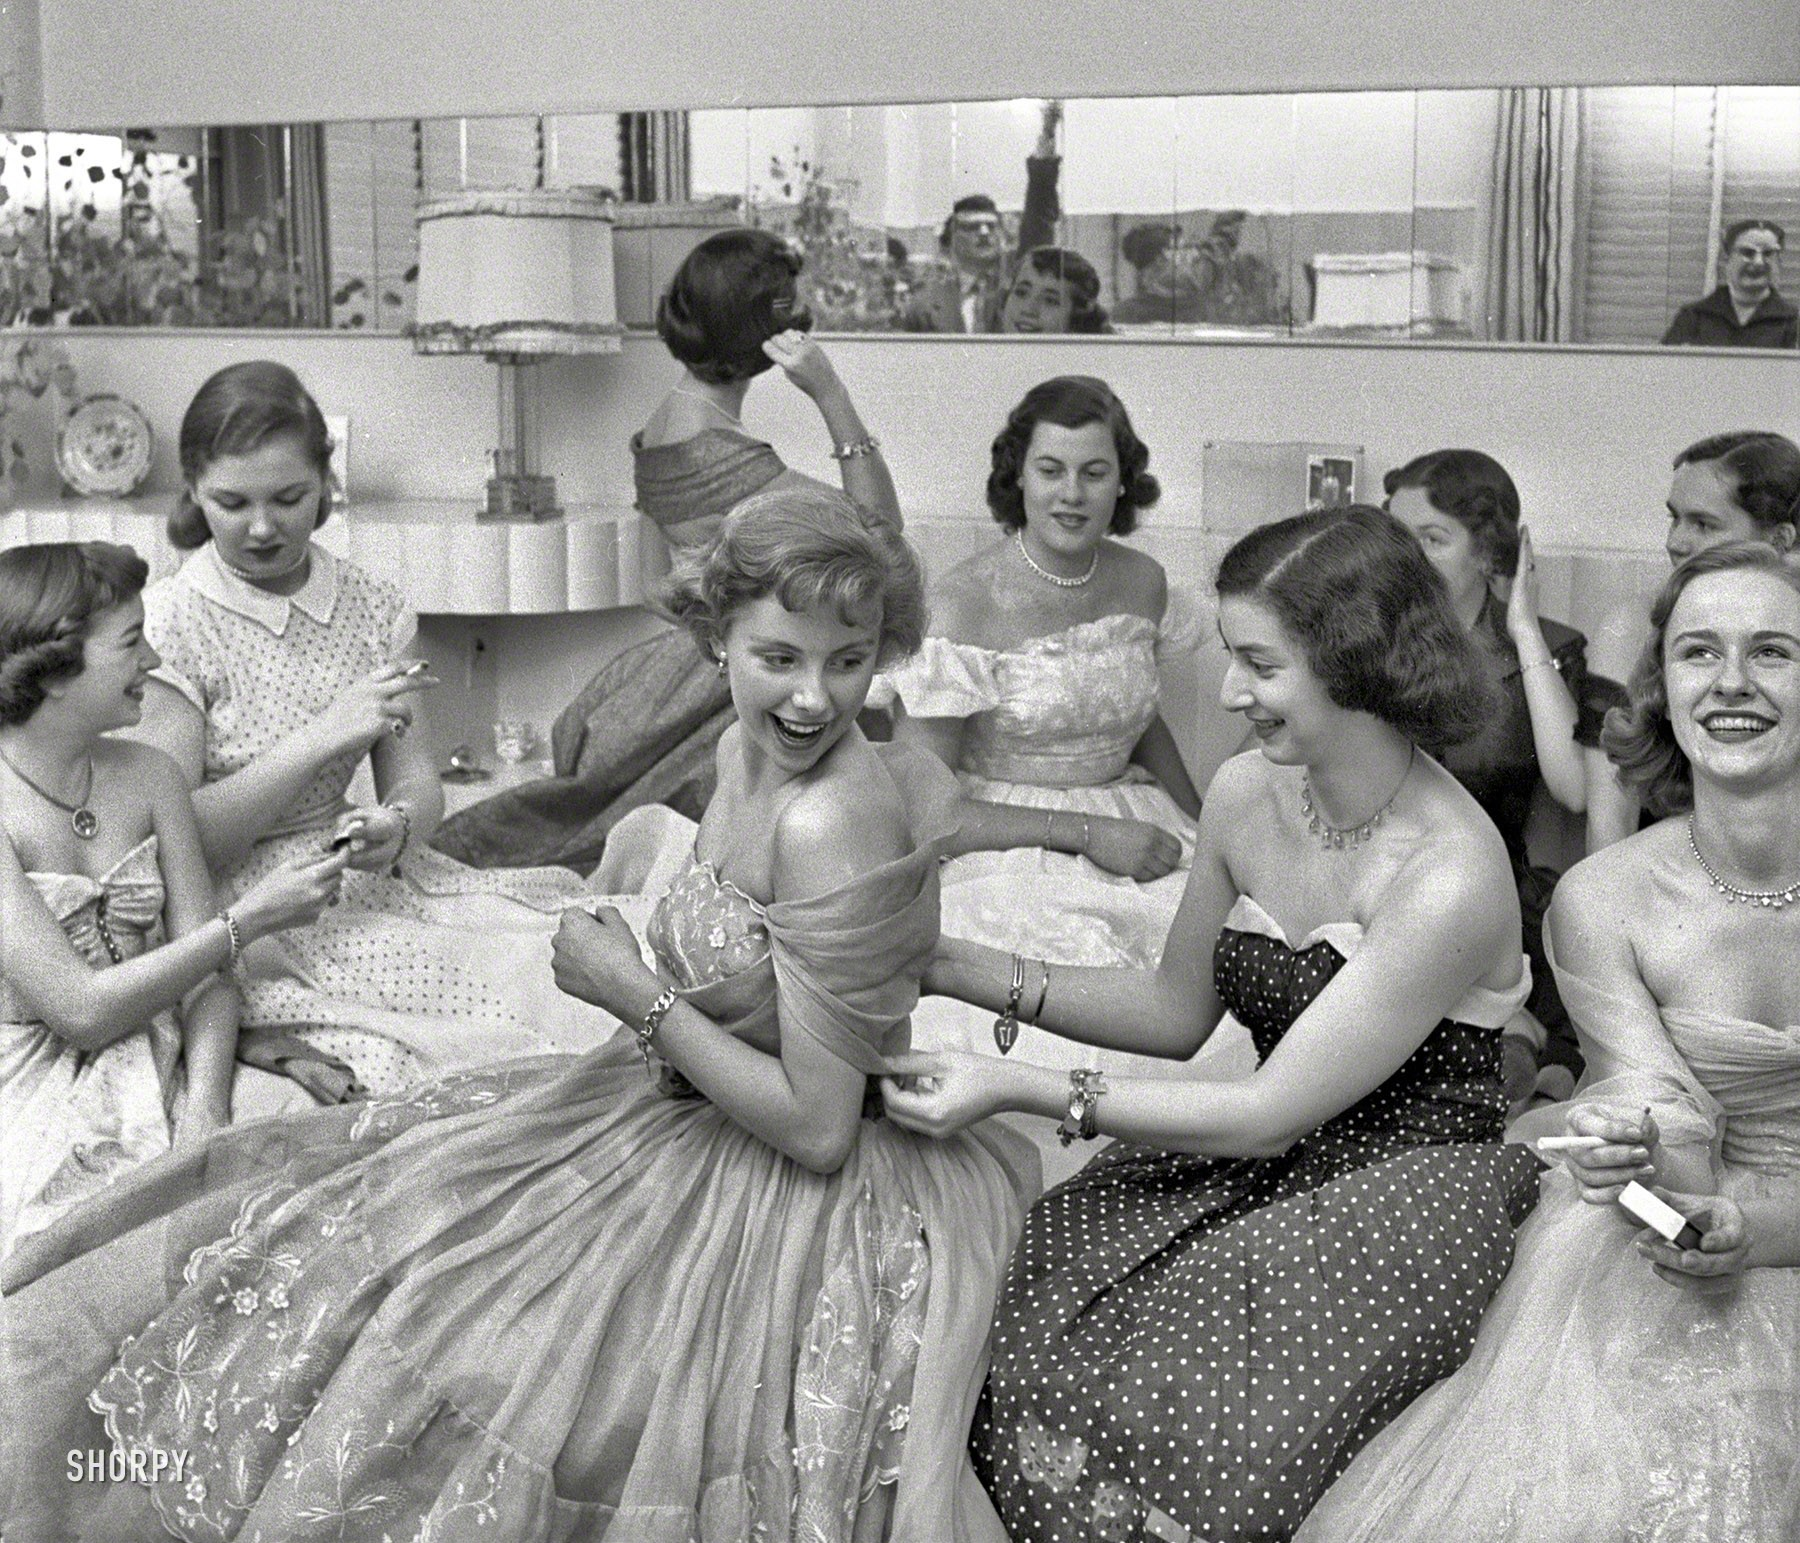 womens roles in the 1950s